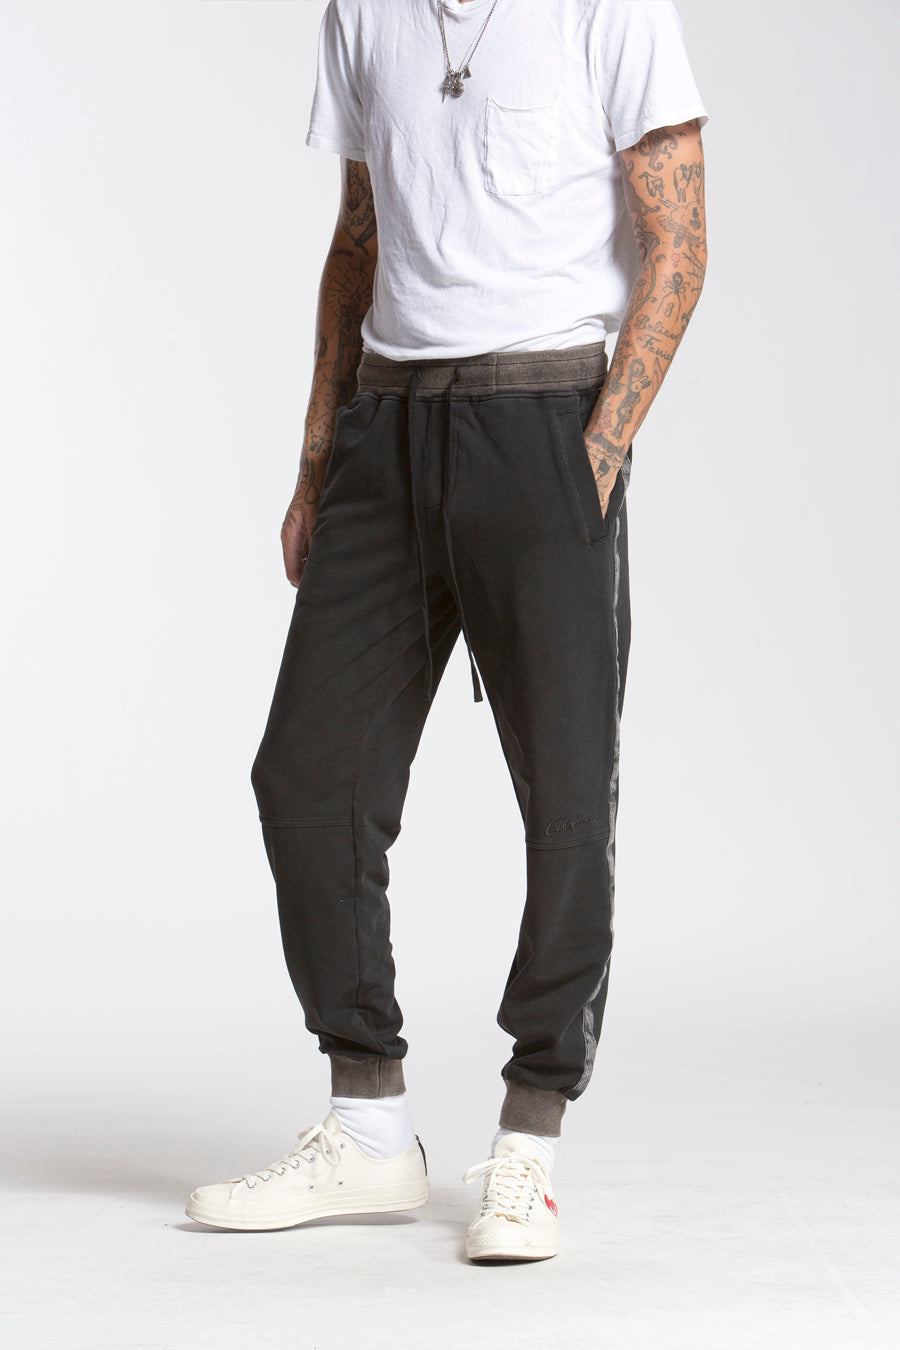 candorofficial - Washed Sweatpants, Black - Bottoms